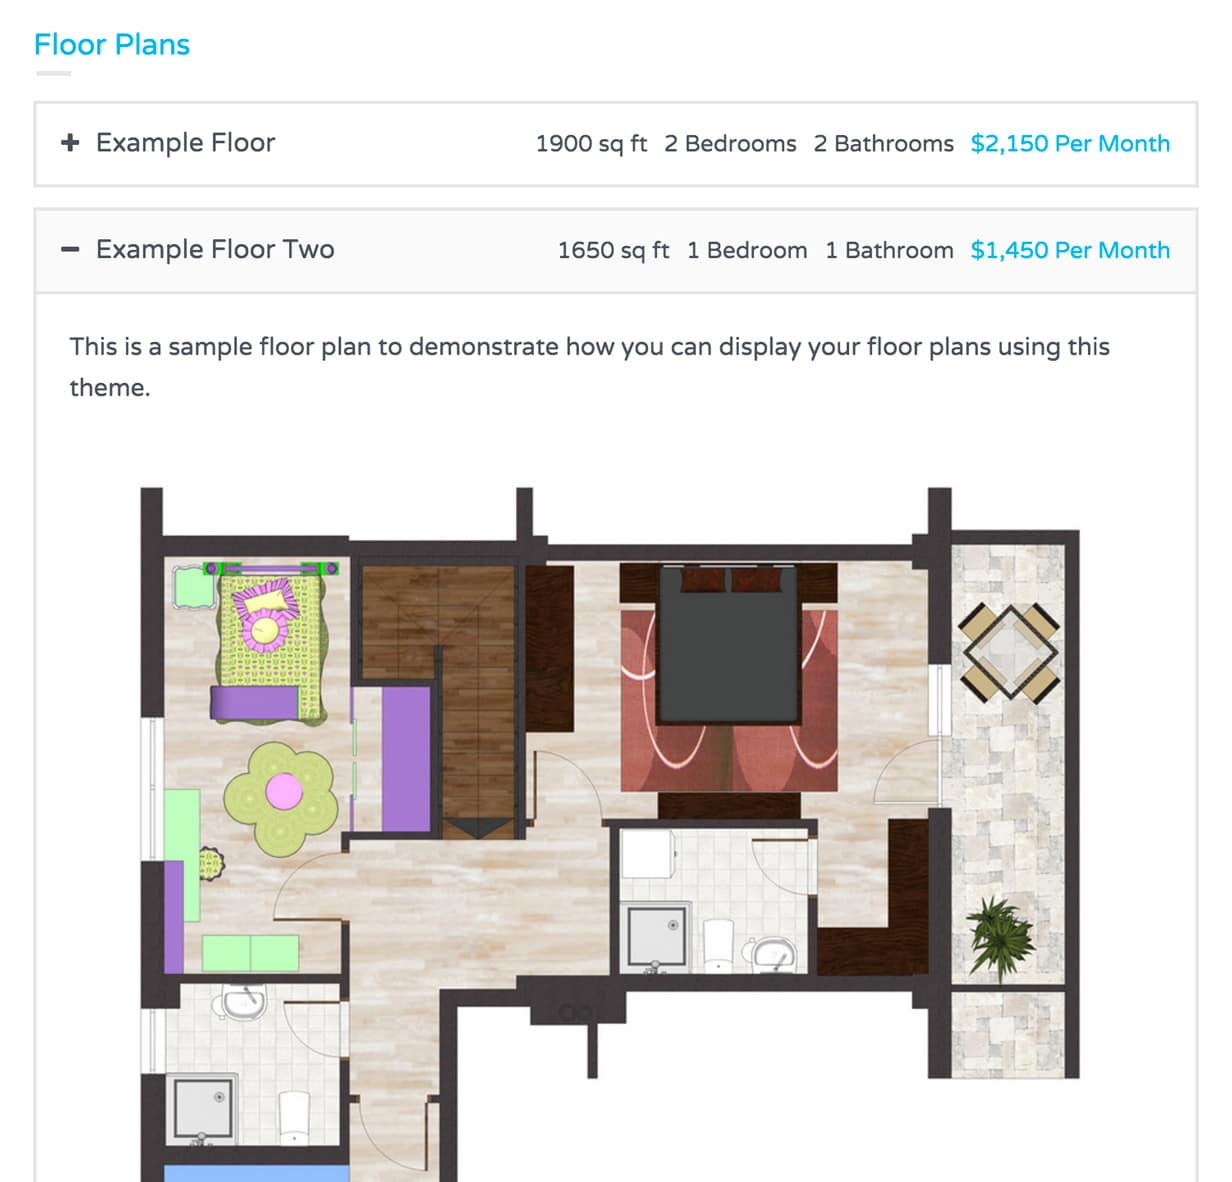 Flexibility to Add Floor Plans